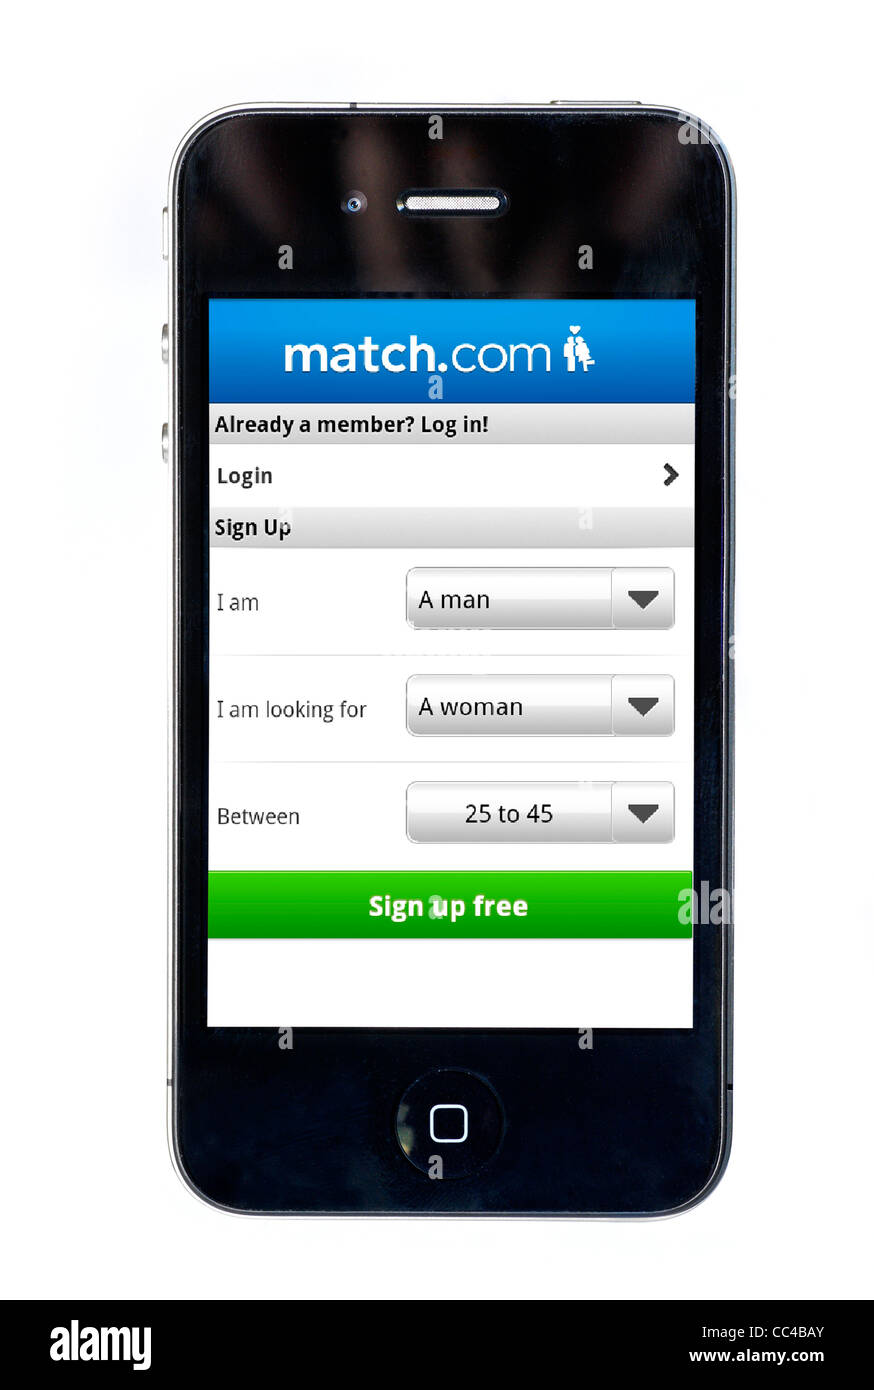 The match.com online dating app on an Apple iPhone 4 smartphone - Stock Image